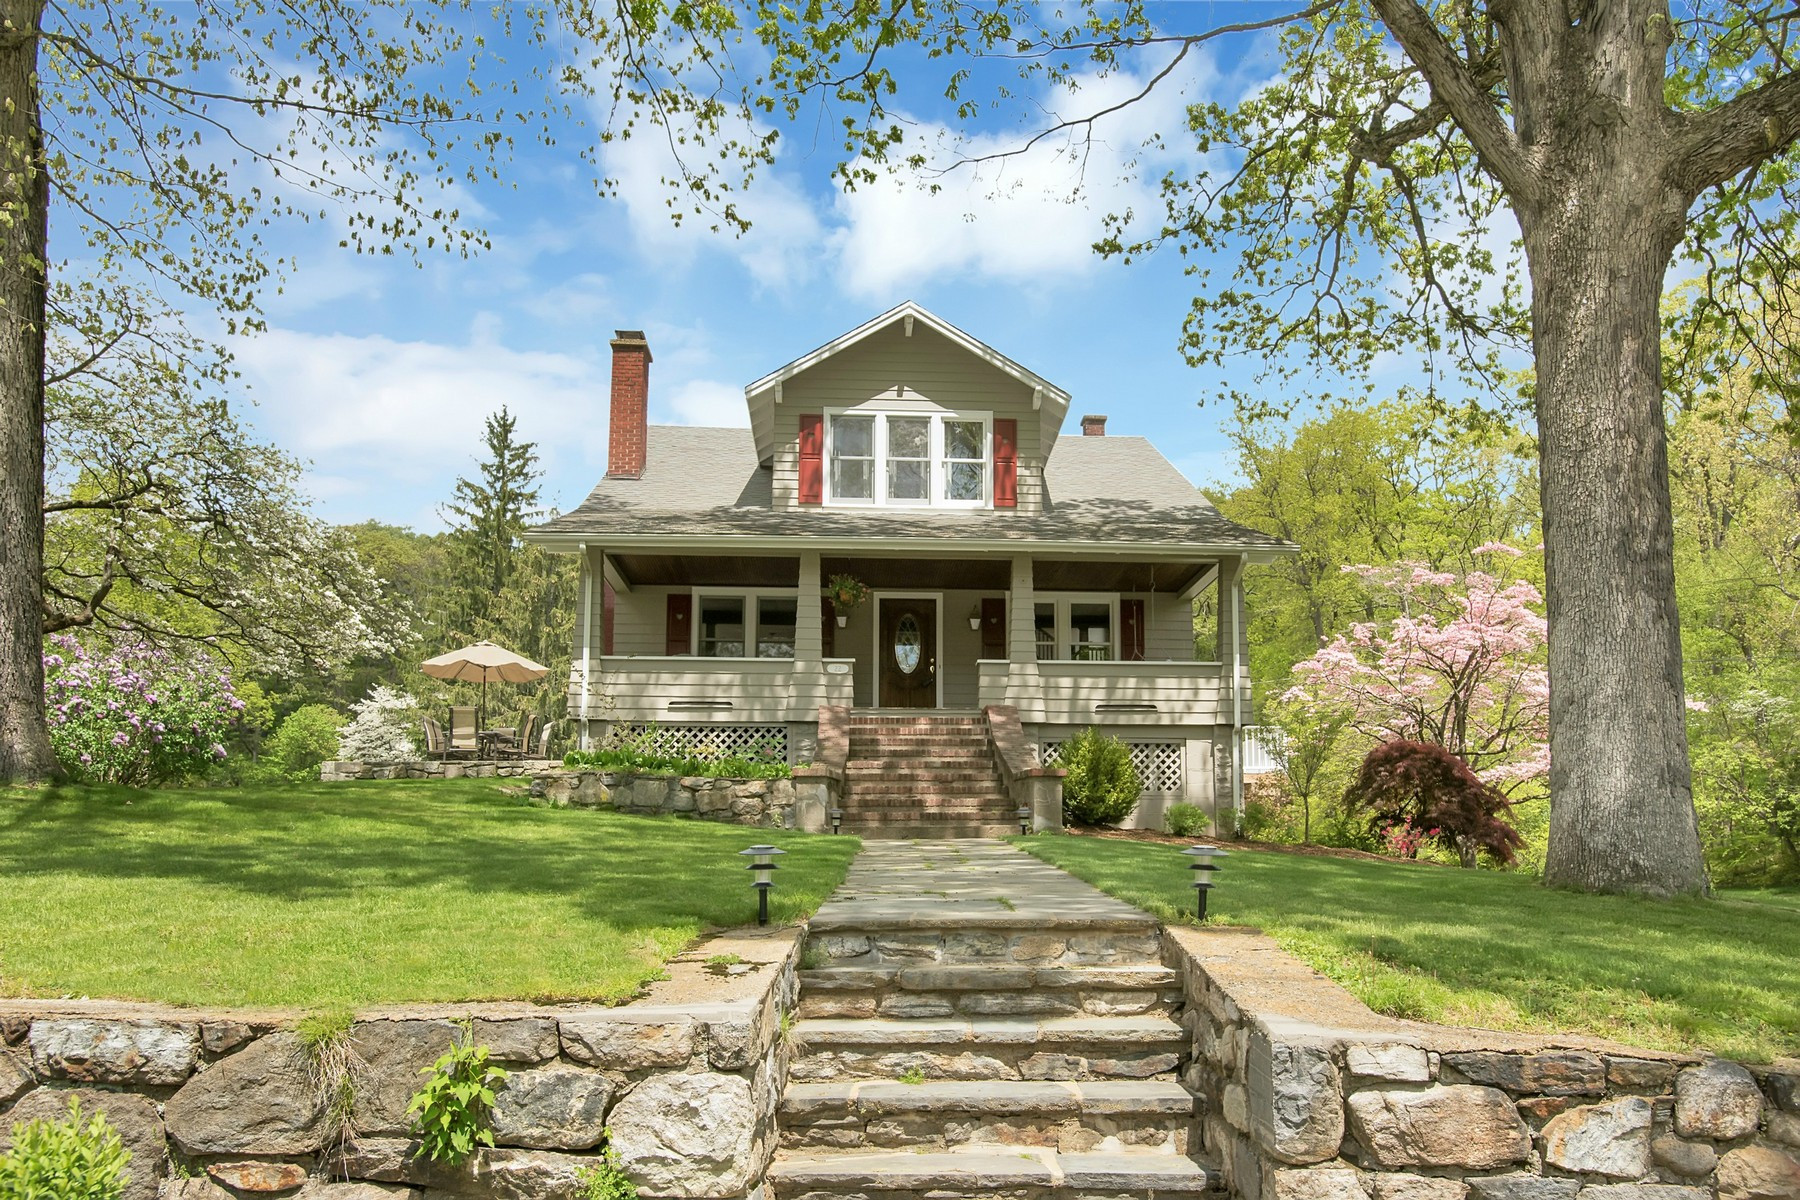 Single Family Home for Sale at Arts and Crafts Mini Estate 22 Jack Road Cortlandt Manor, New York 10567 United States